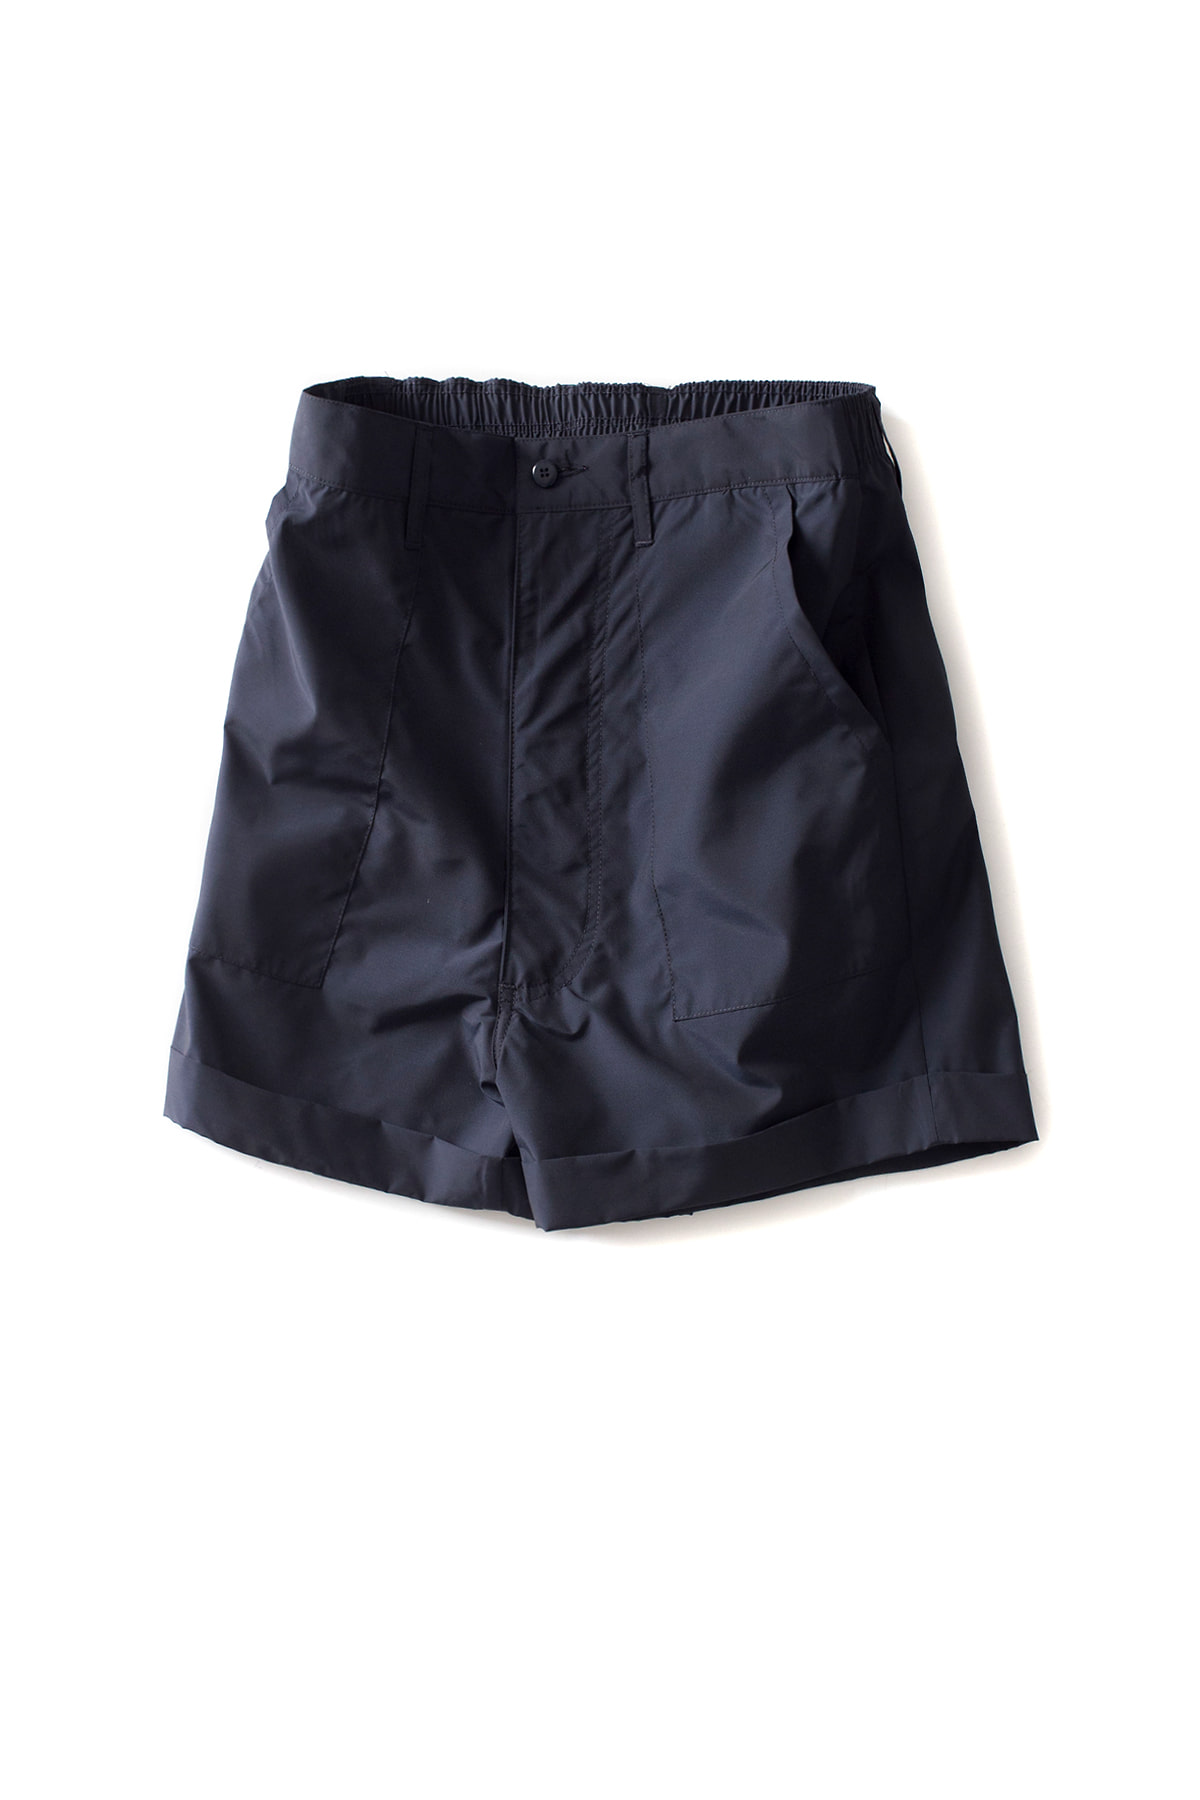 E. Tautz : Work Shorts W/Turn Up (Navy)